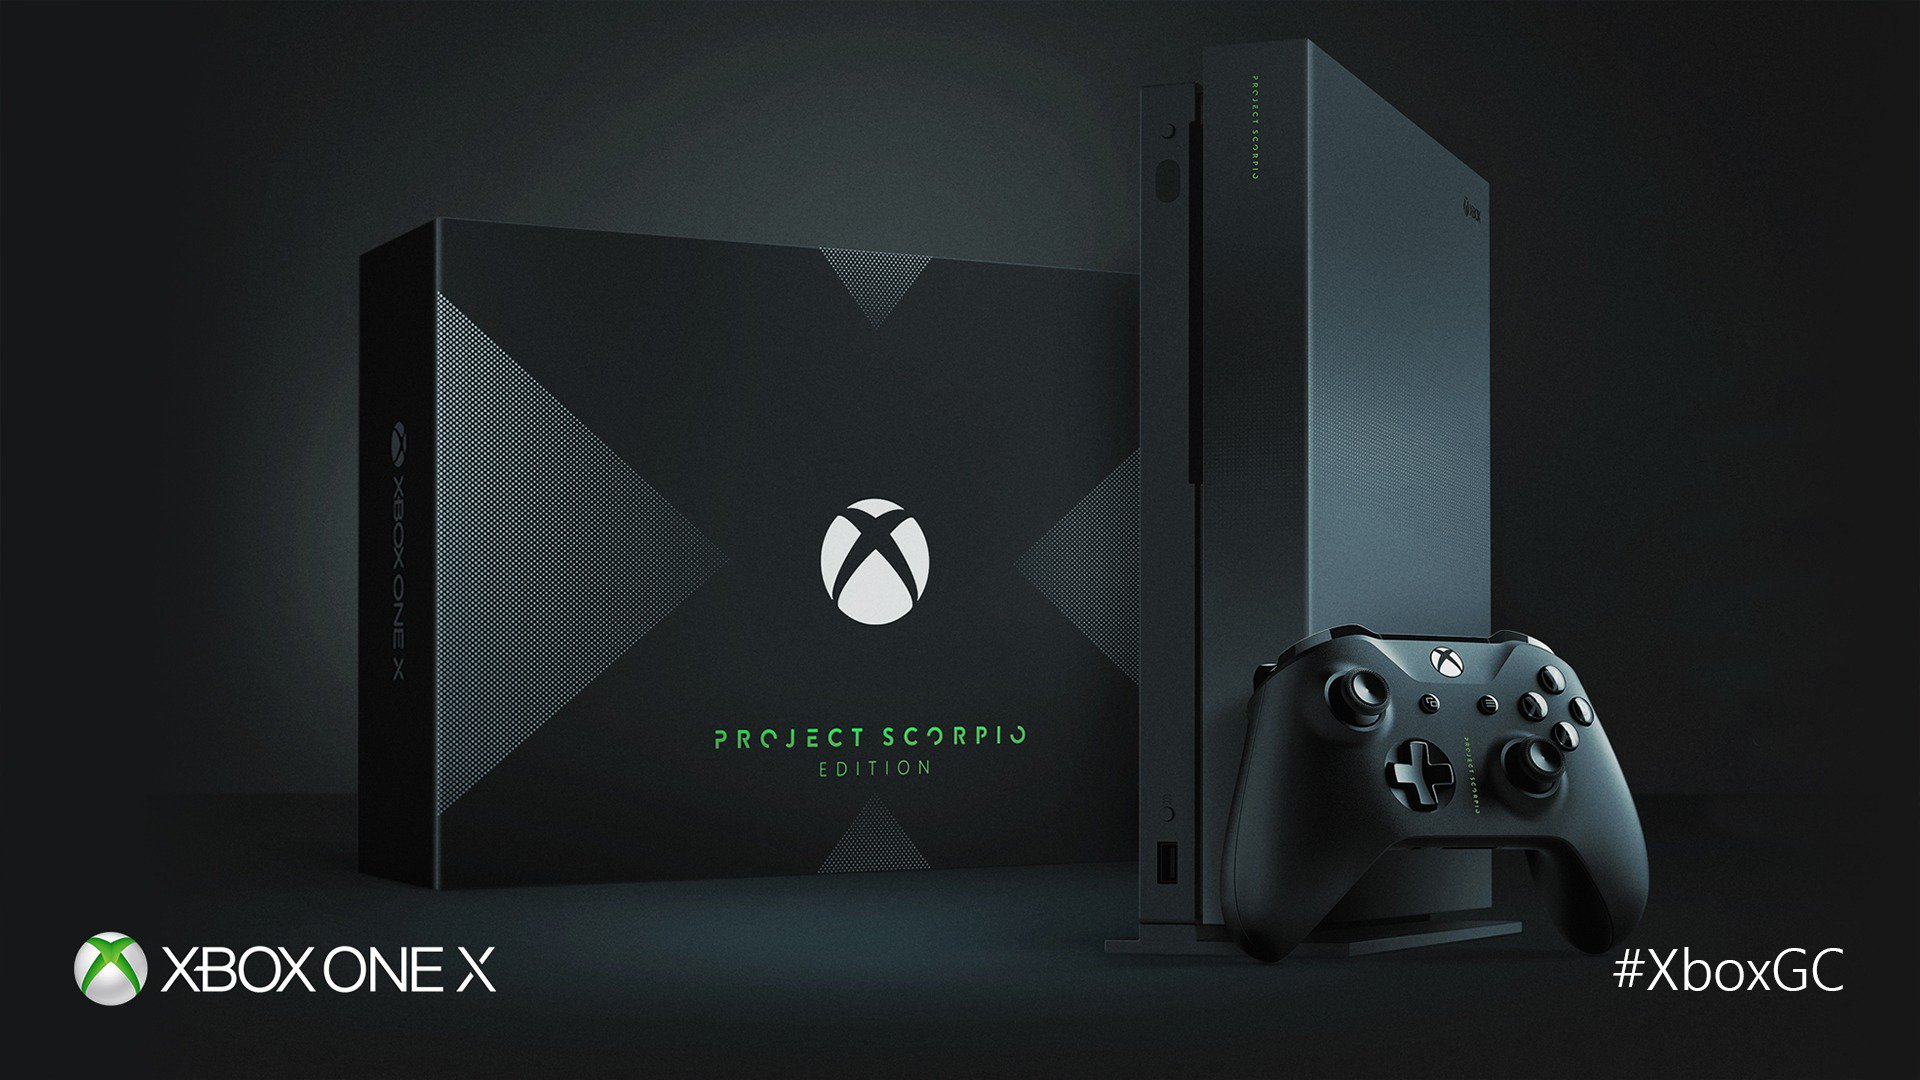 Custom design. Limited edition. Get the Project Scorpio #XboxOneX before it's gone: https://t.co/XXjNAO9nni https://t.co/bM8QAZBO5s